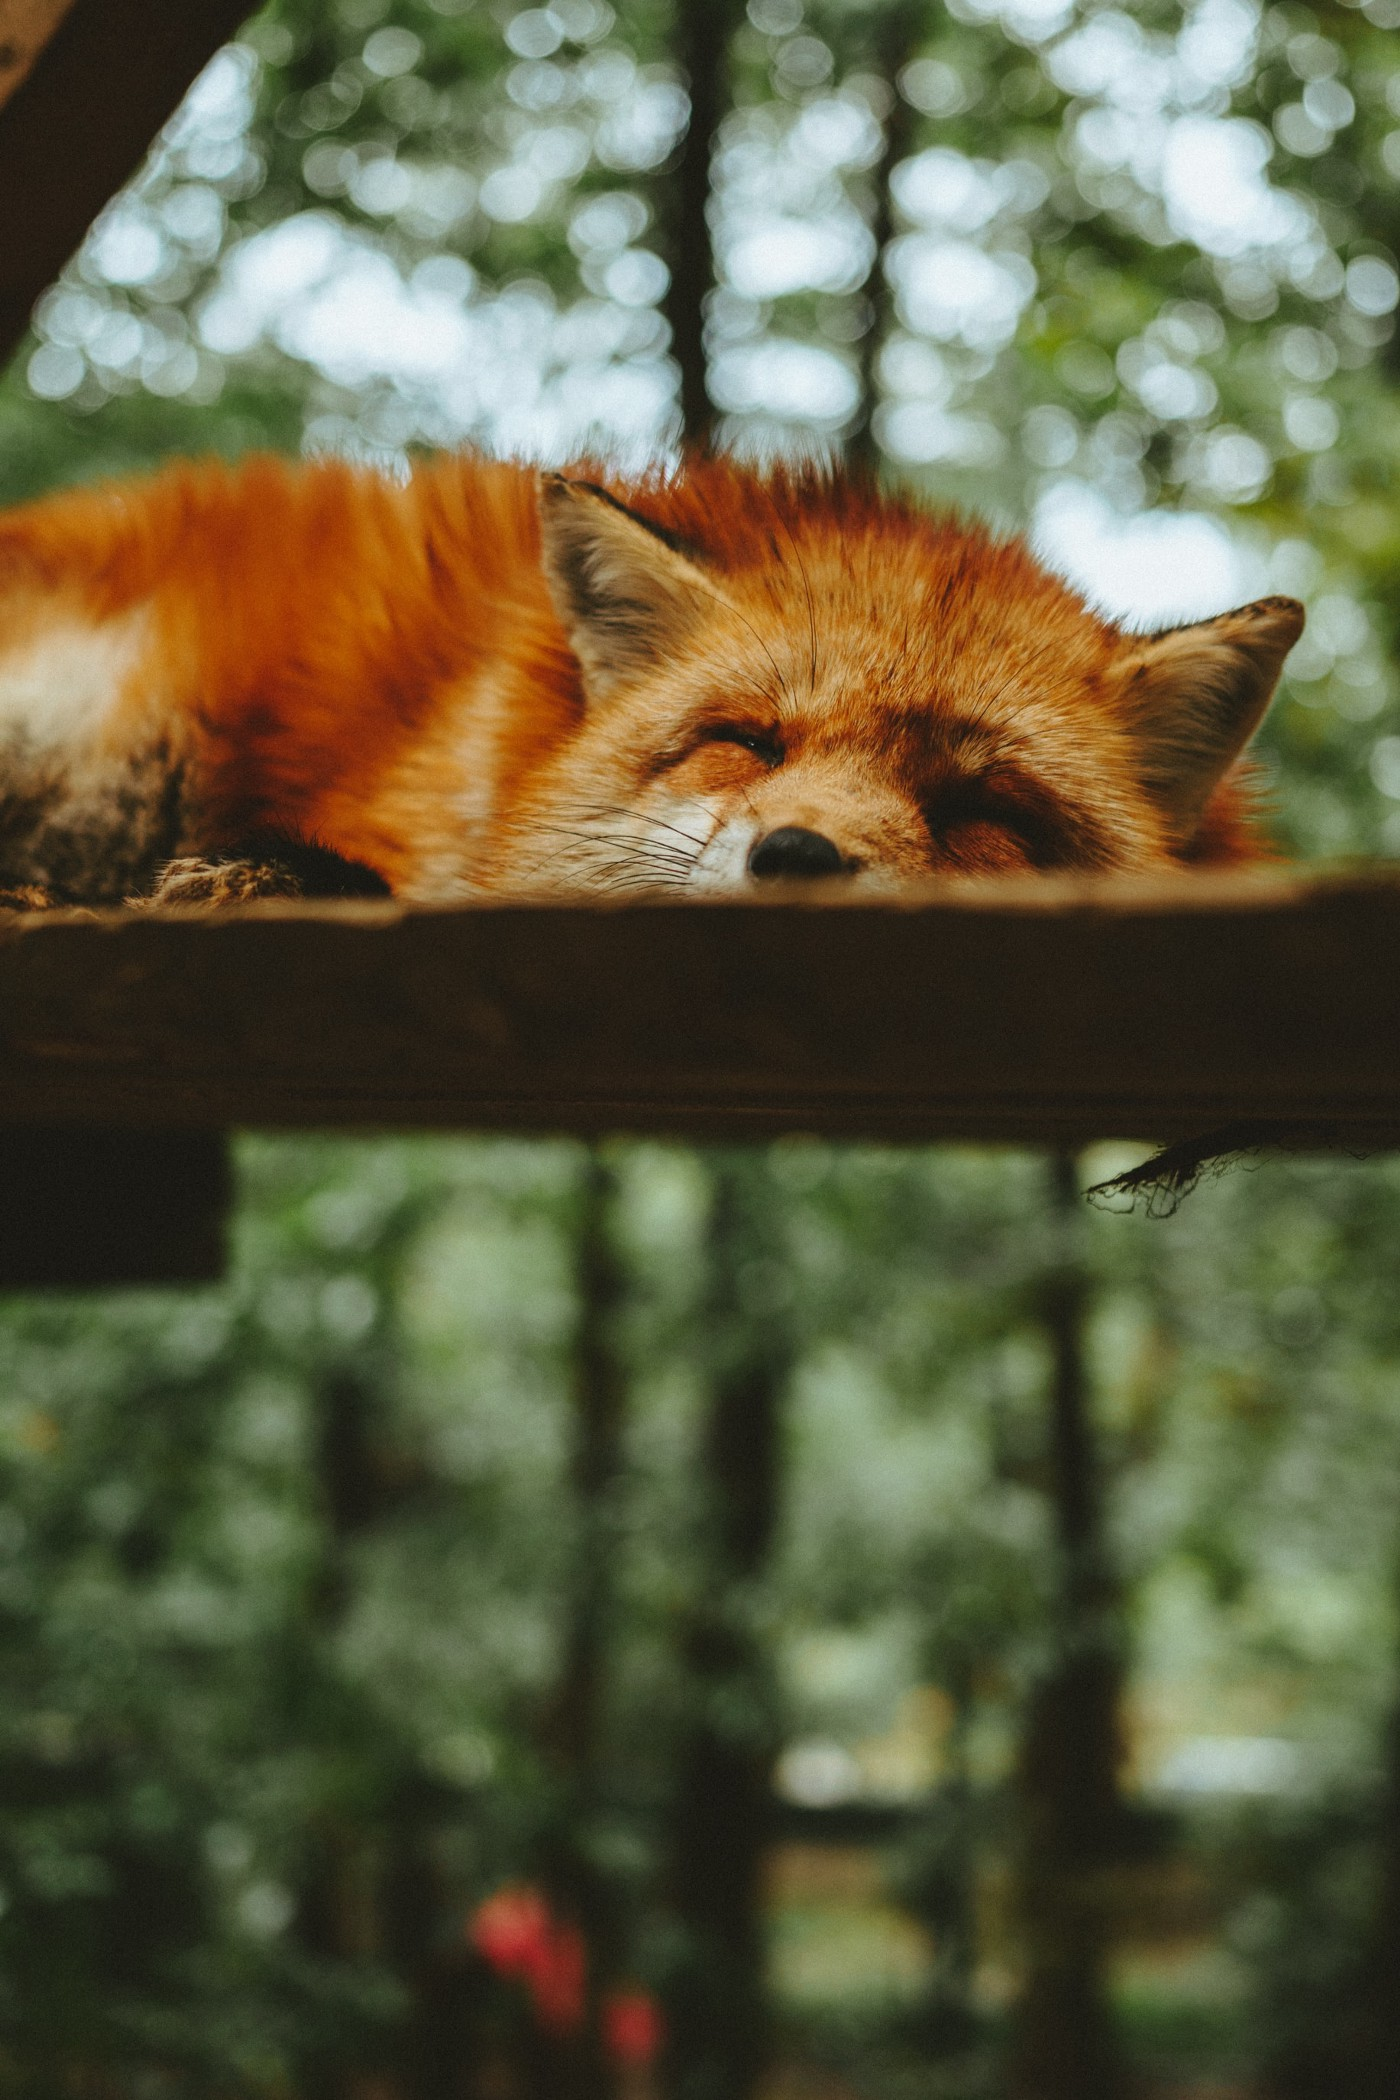 Sleeping red fox on a wood plank with lush trees in the background